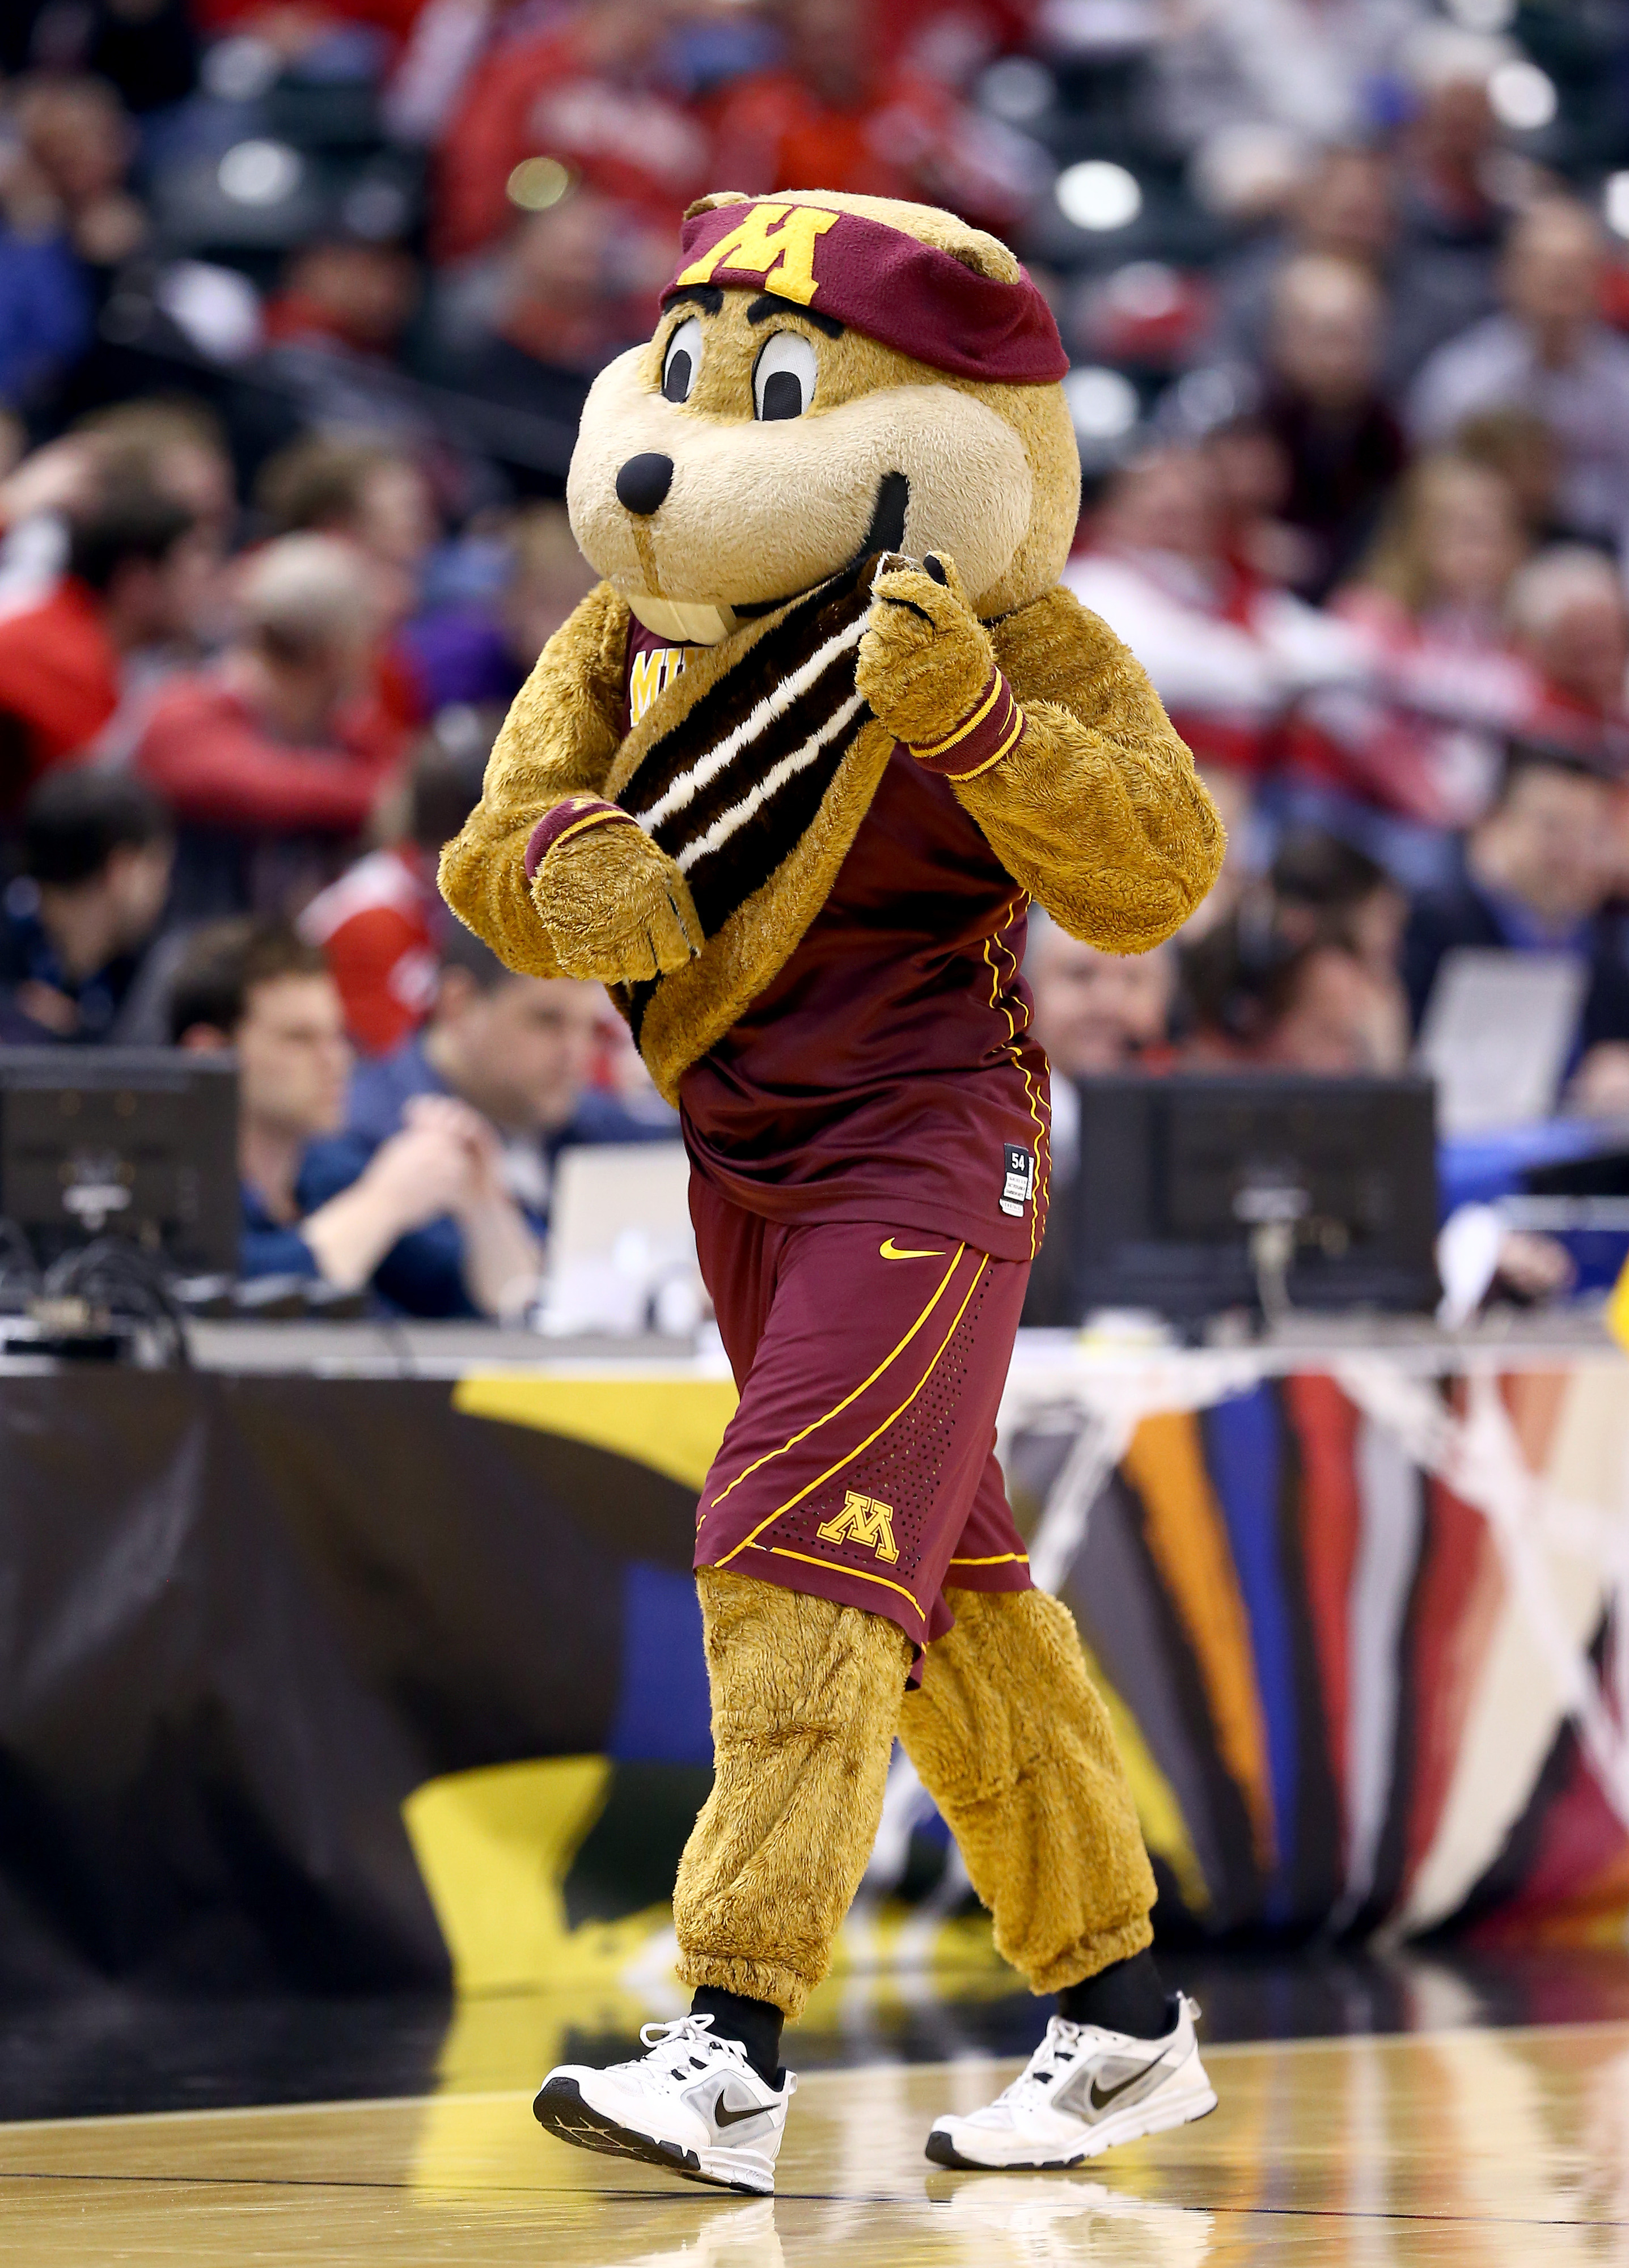 Is Goldy The Gopher playing a lute?  Wait.  IS THAT HIS TAIL?